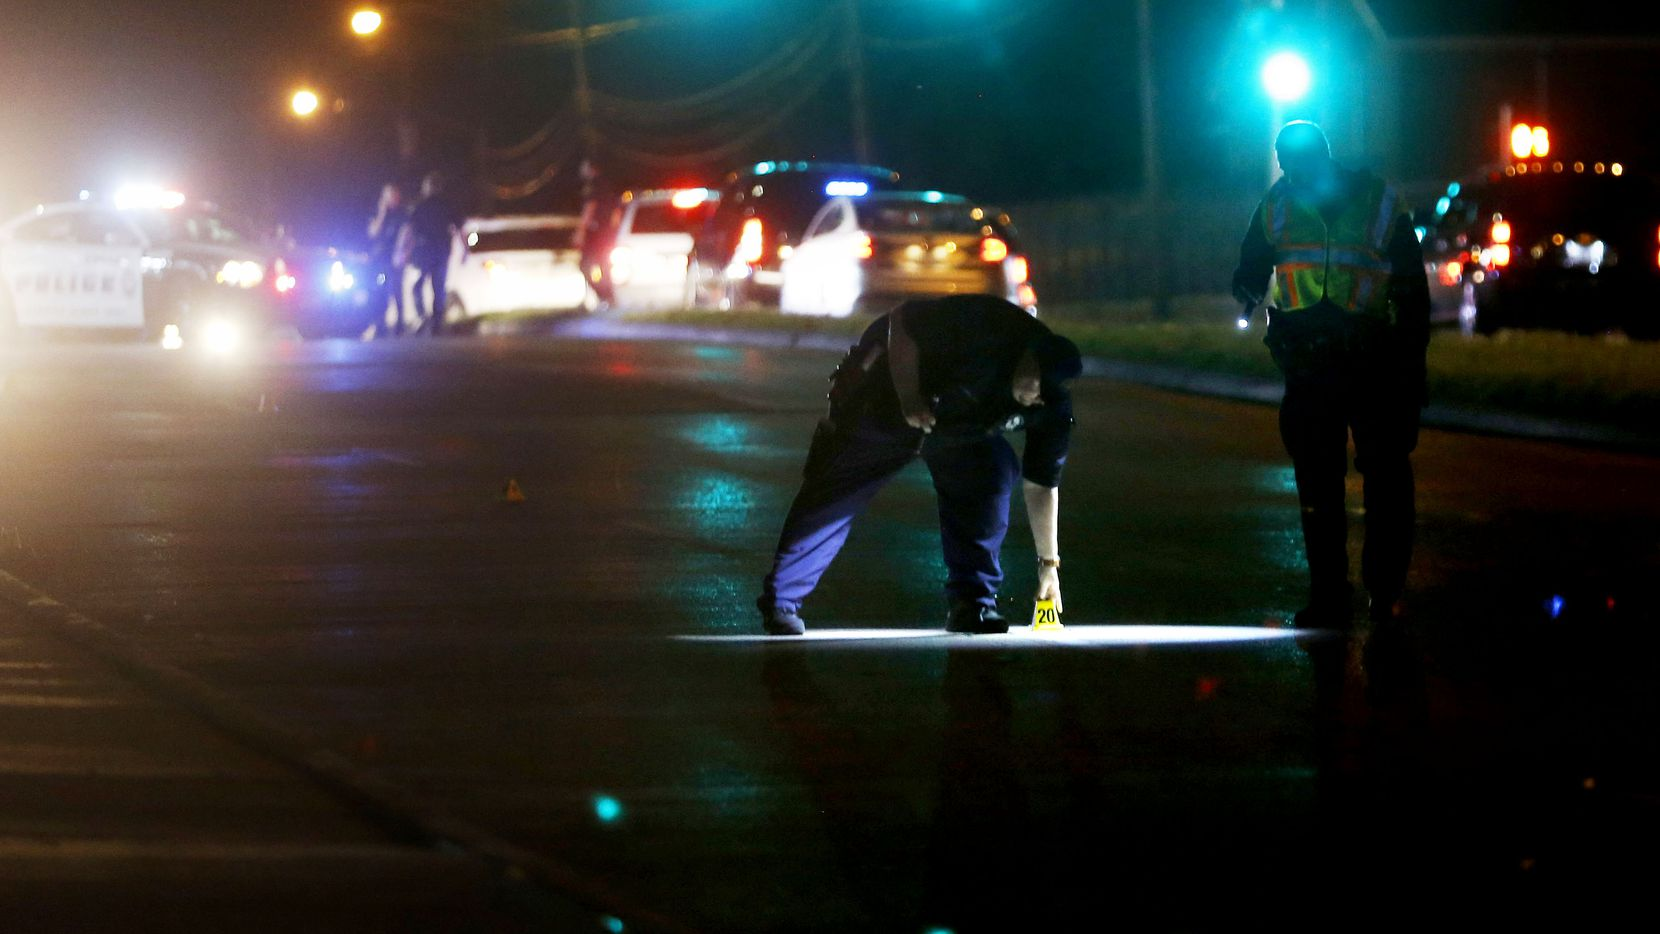 Dallas police mark evidence while investigating the scene of a shooting where a 13-year-old boy died after being caught in crossfire near a Pleasant Grove gas station in the 9400 block of Bruton Avenue in Dallas on June 4, 2019.